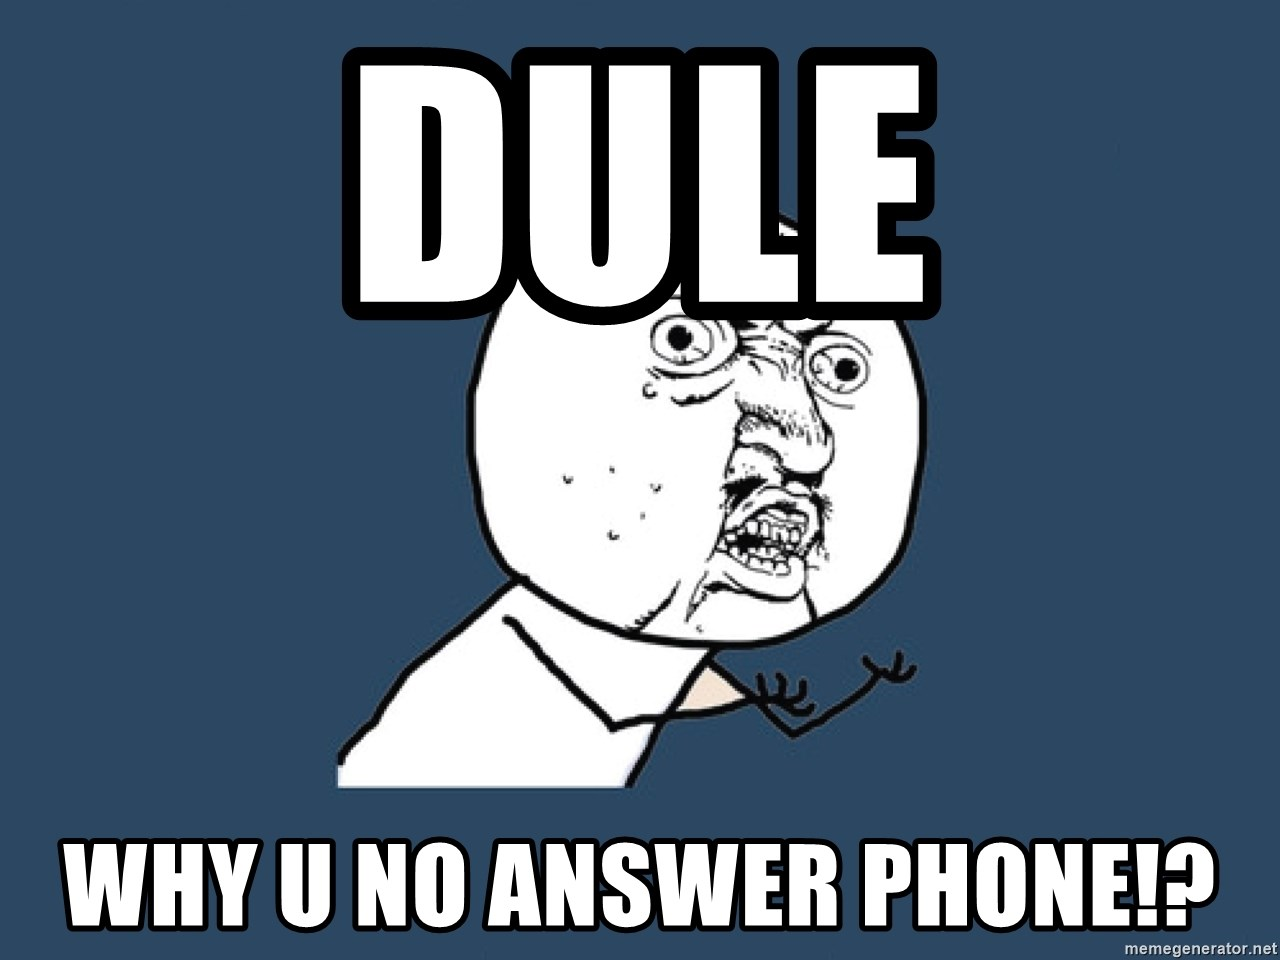 Y U No - DULE why u no answer phone!?